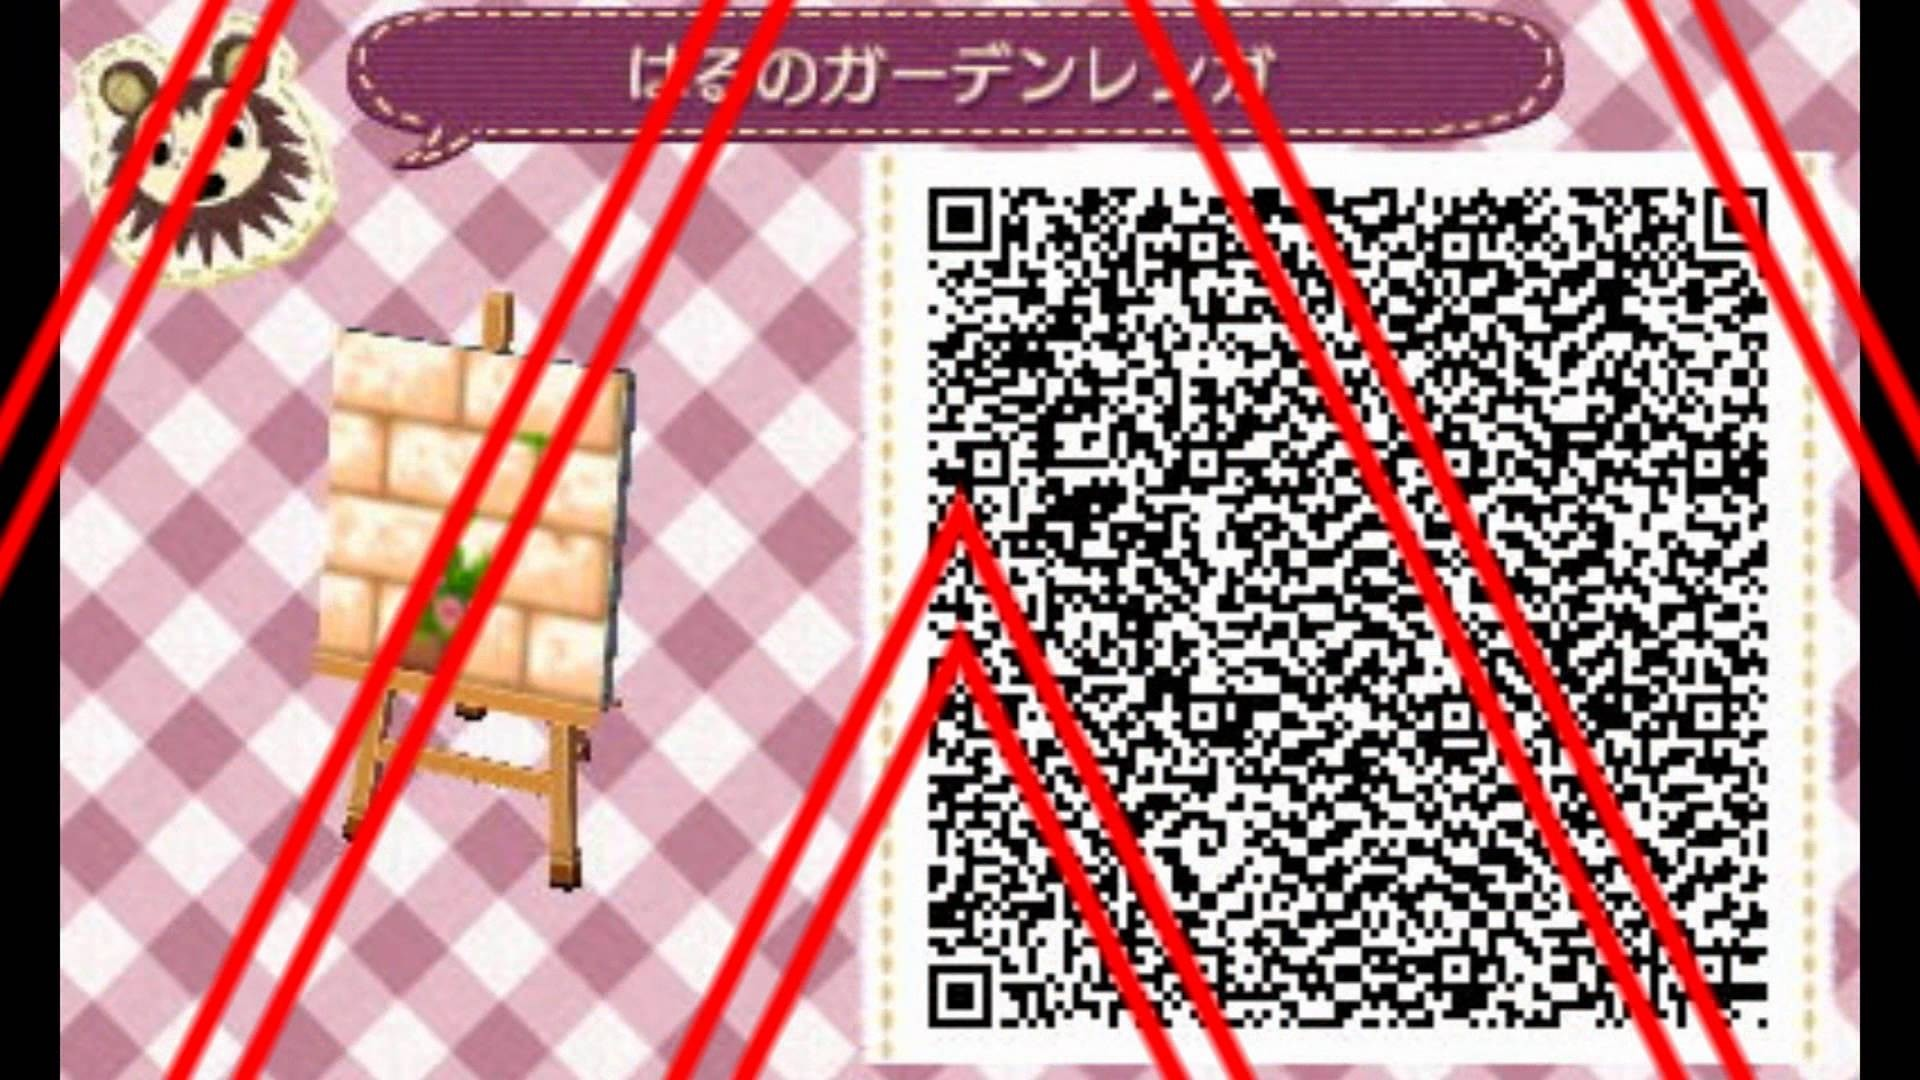 Animal Crossing New Leaf Wallpaper Qr Acnl Wallpaper Qr Codes 37 Images